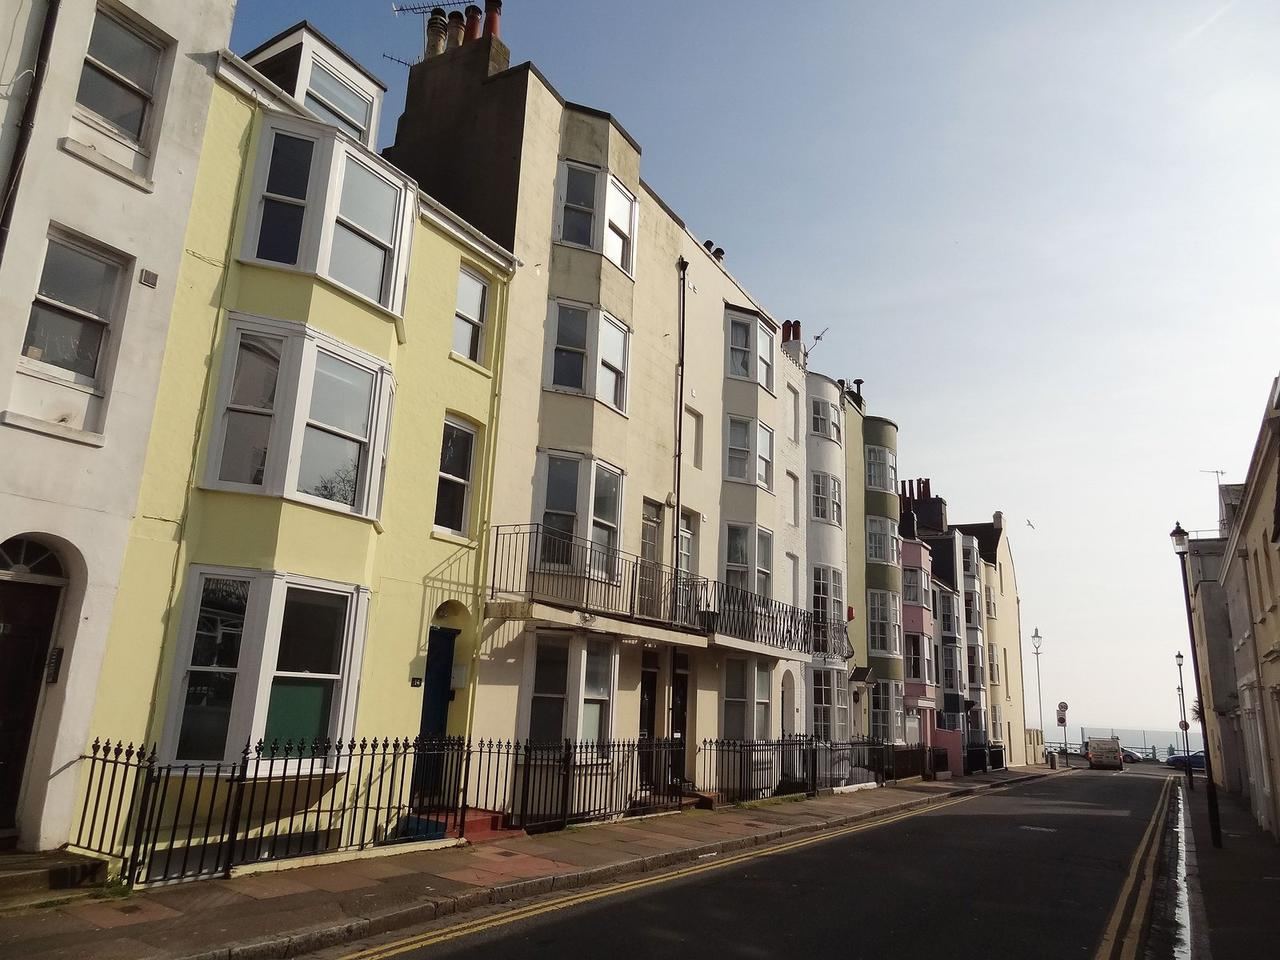 Brighton Mermaid House, Brighton & Hove Images - 23